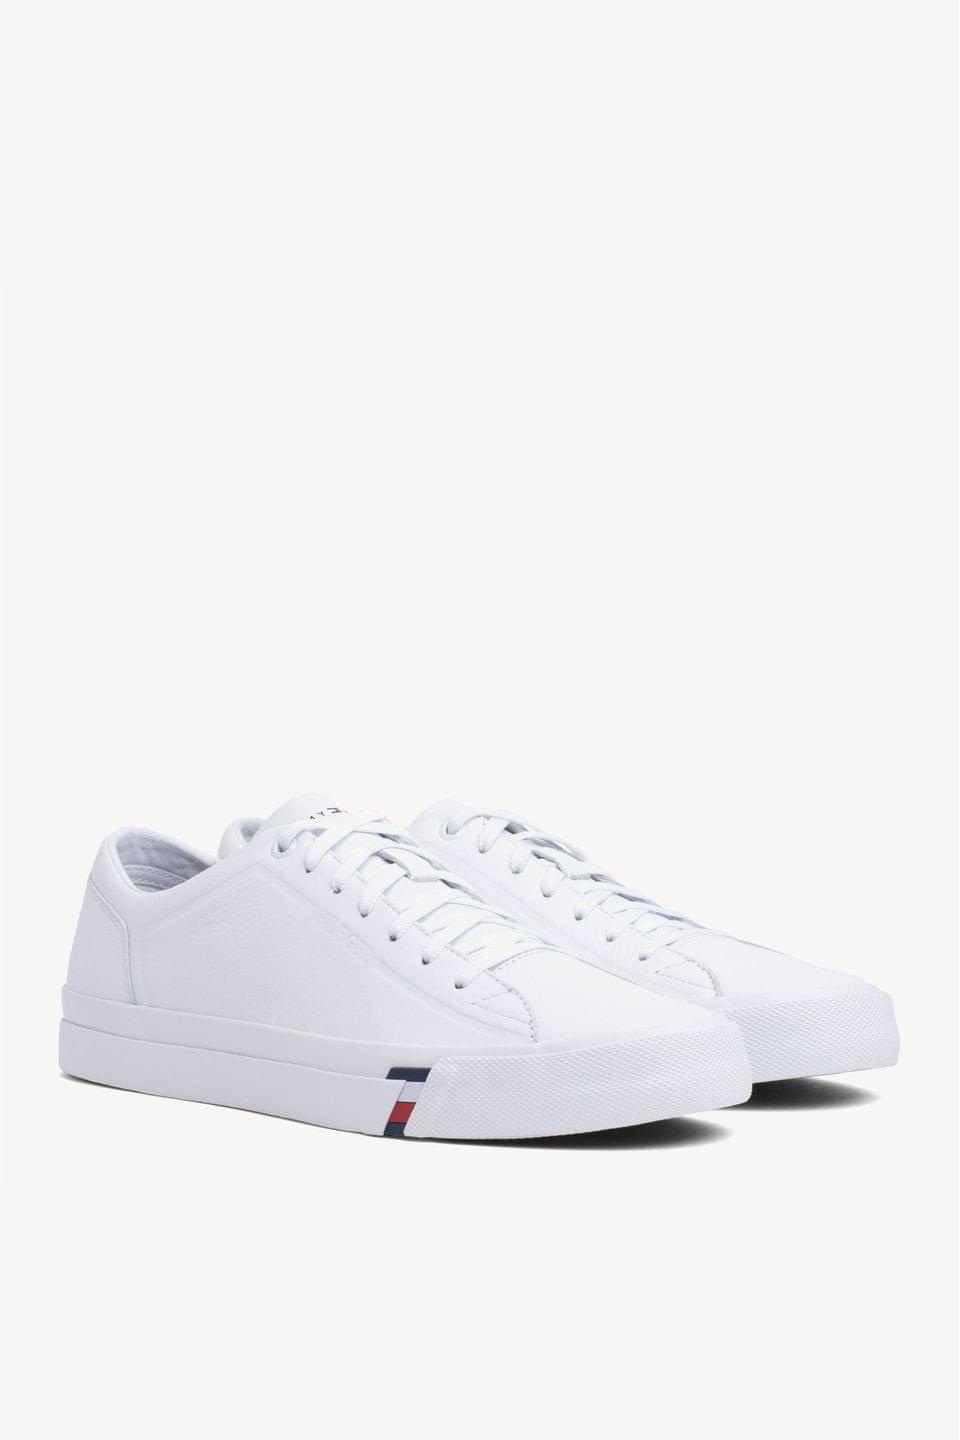 Men's Tommy Hilfiger White Corporate Lea Tommy Hilfiger Trainers